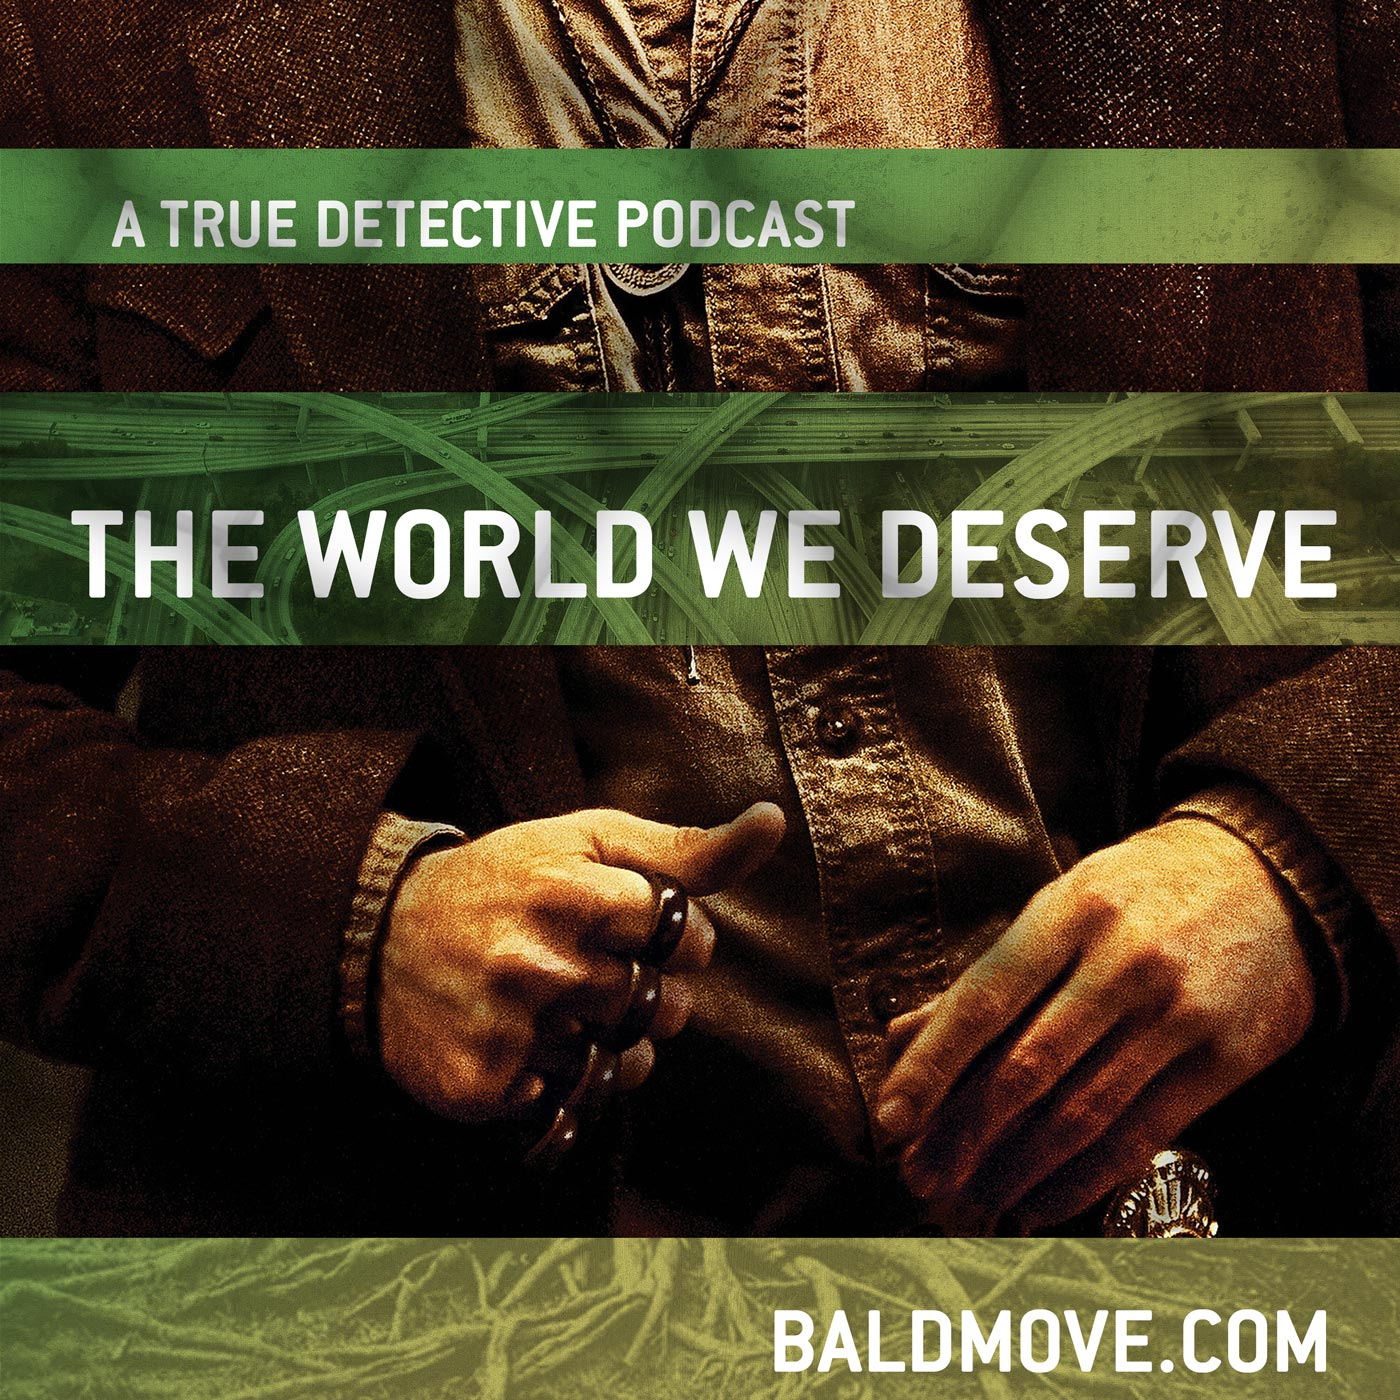 The World We Deserve – A True Detective Podcast